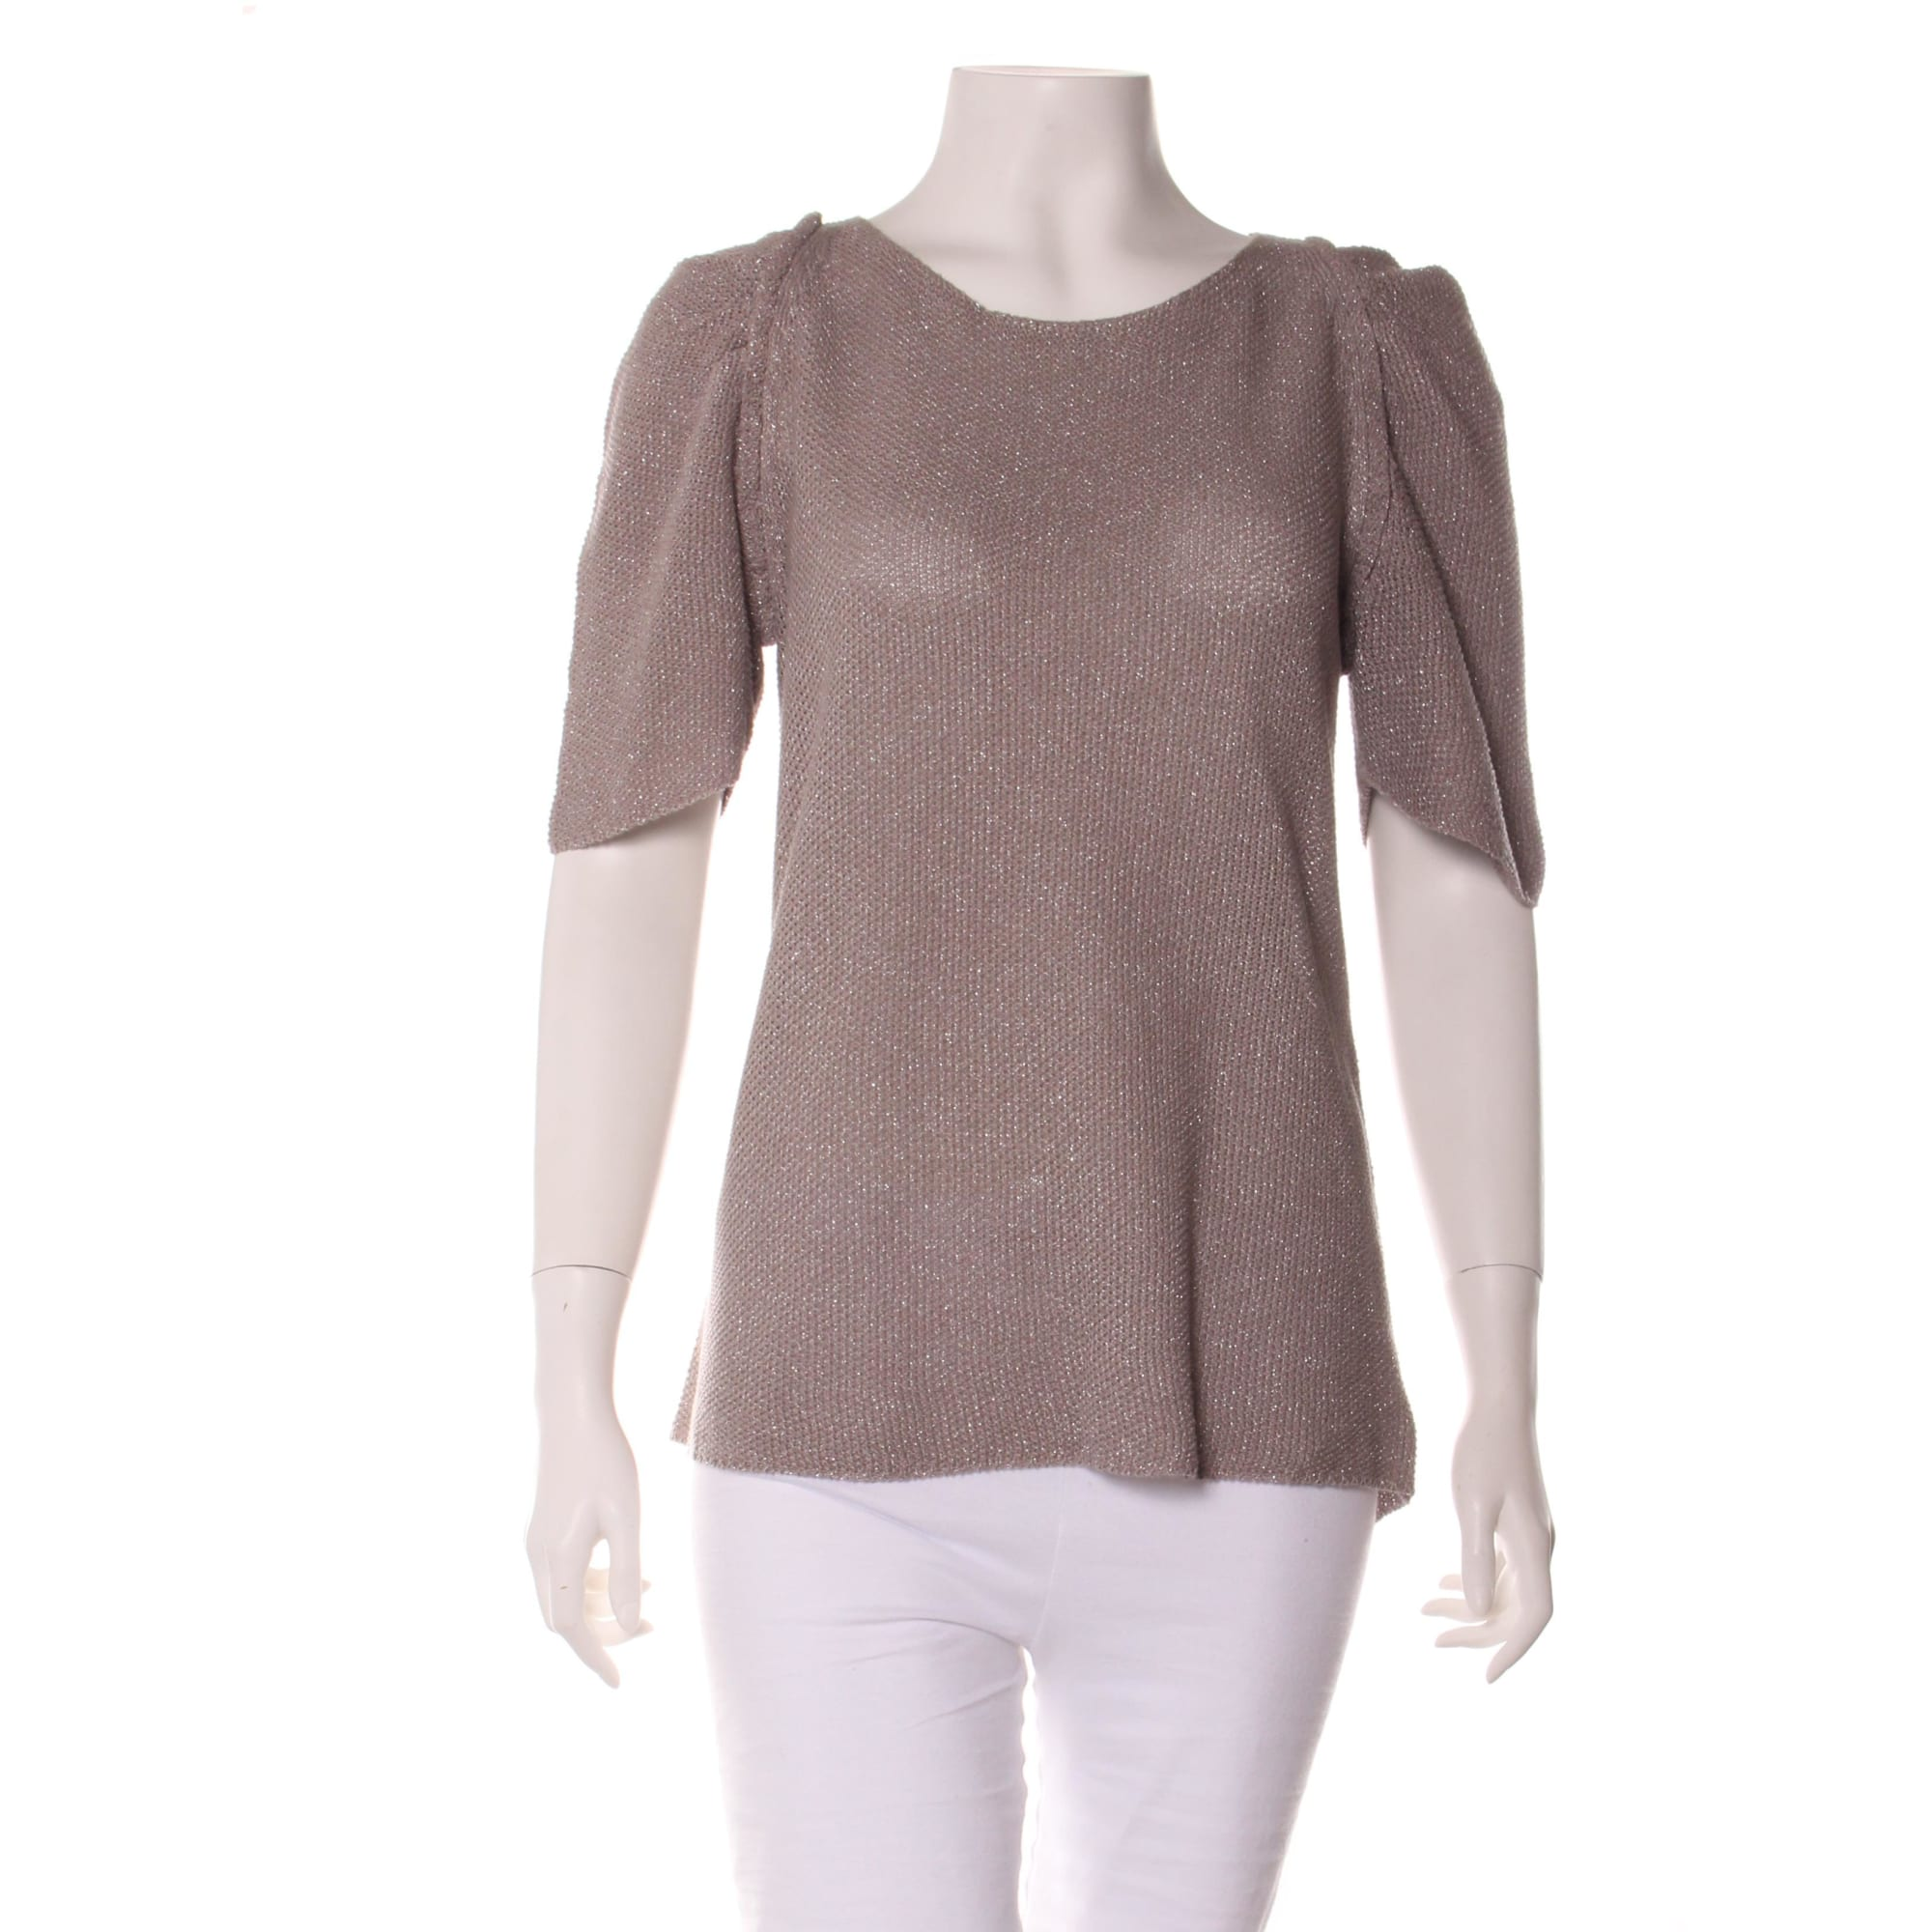 Maje Top, tee-shirt lin 40 (L, T3)